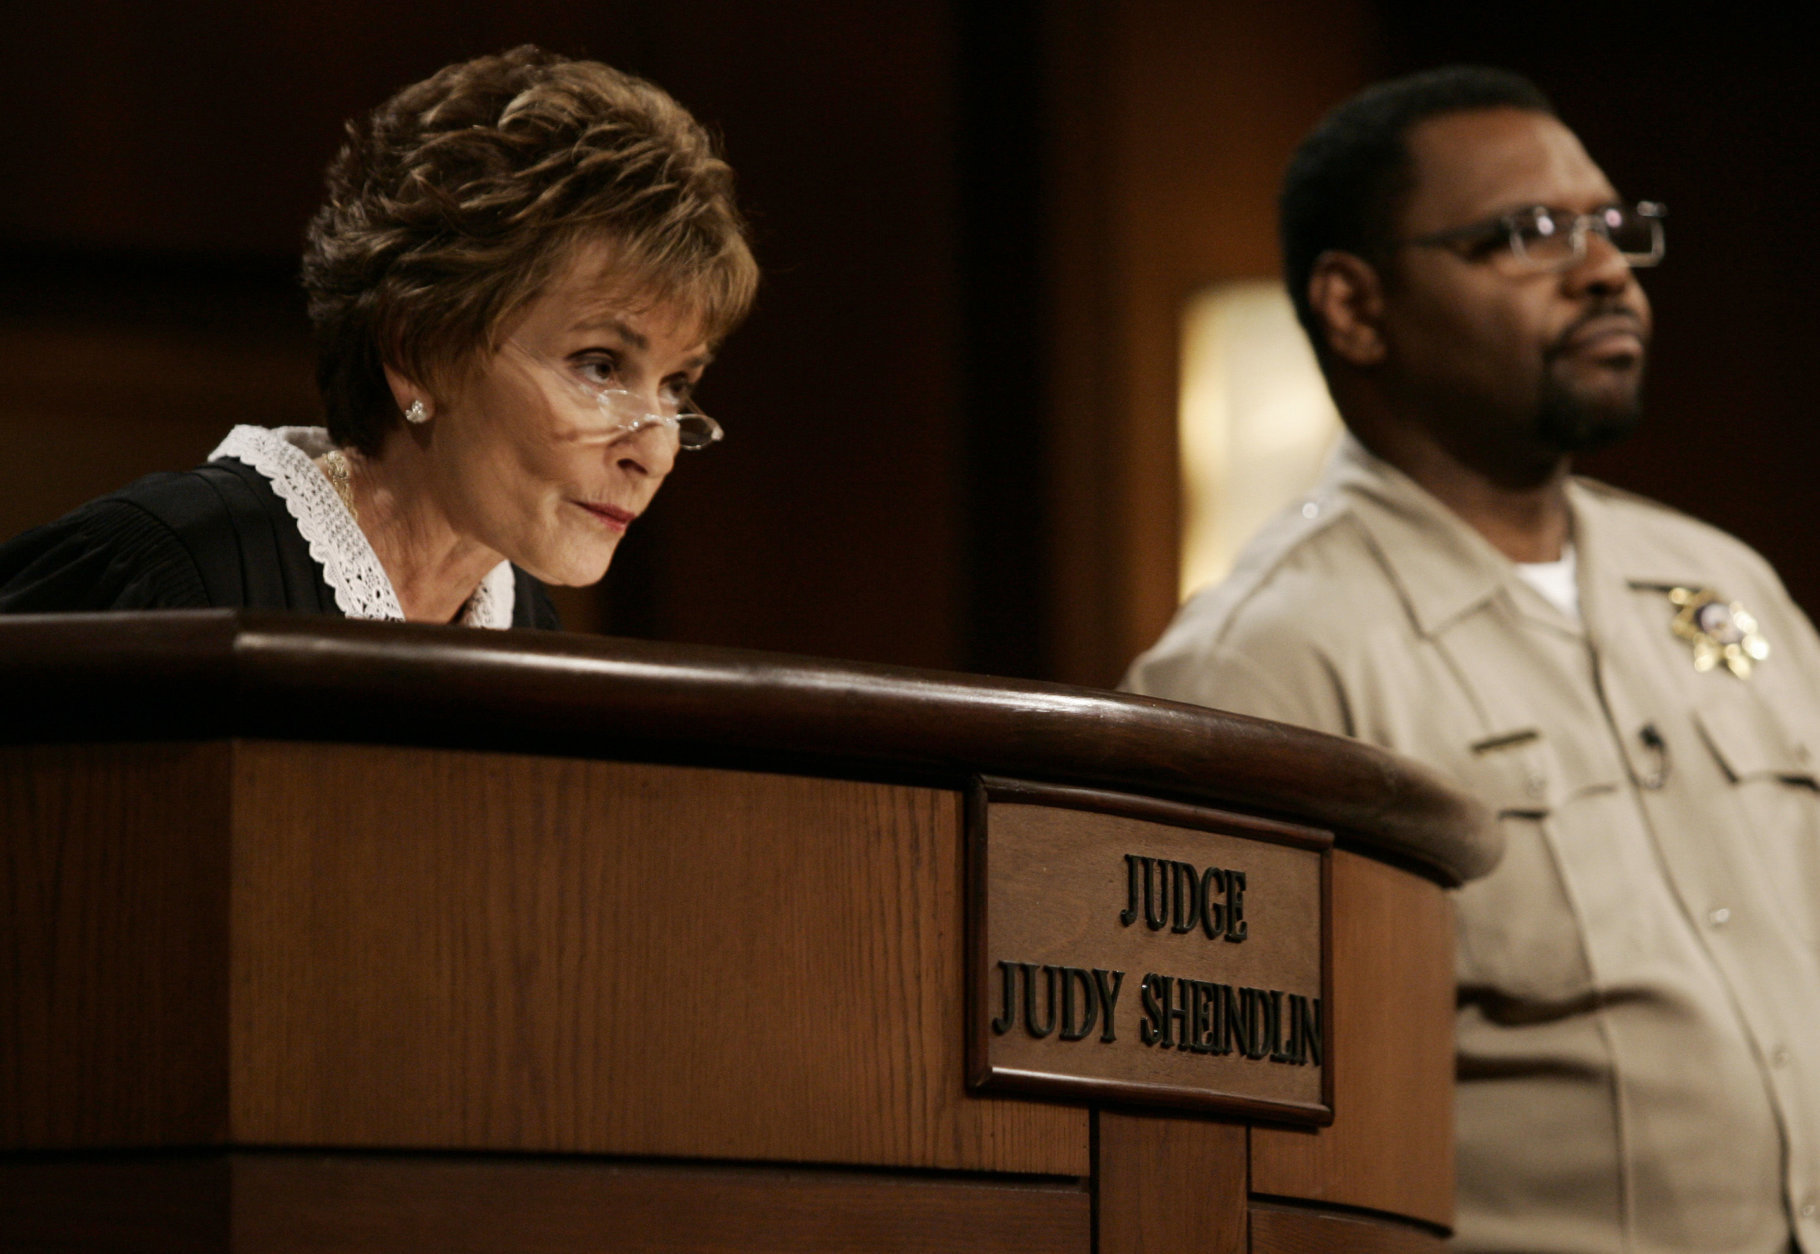 """FILE - In this Feb. 2, 2006, file photo, Judge Judy Sheindlin presides over a case as her bailiff Petri Hawkins Byrd listens on the set of her syndicated show """"Judge Judy"""" at the Tribune Studios in Los Angeles. Sheindlin, better known as Judge Judy, is funding a space for public debate at the University of Southern California. The forum, which was to be unveiled Tuesday night, Sept. 12, 2017, will host the USC Annenberg Debate Series. (AP Photo/Damian Dovarganes, File)"""